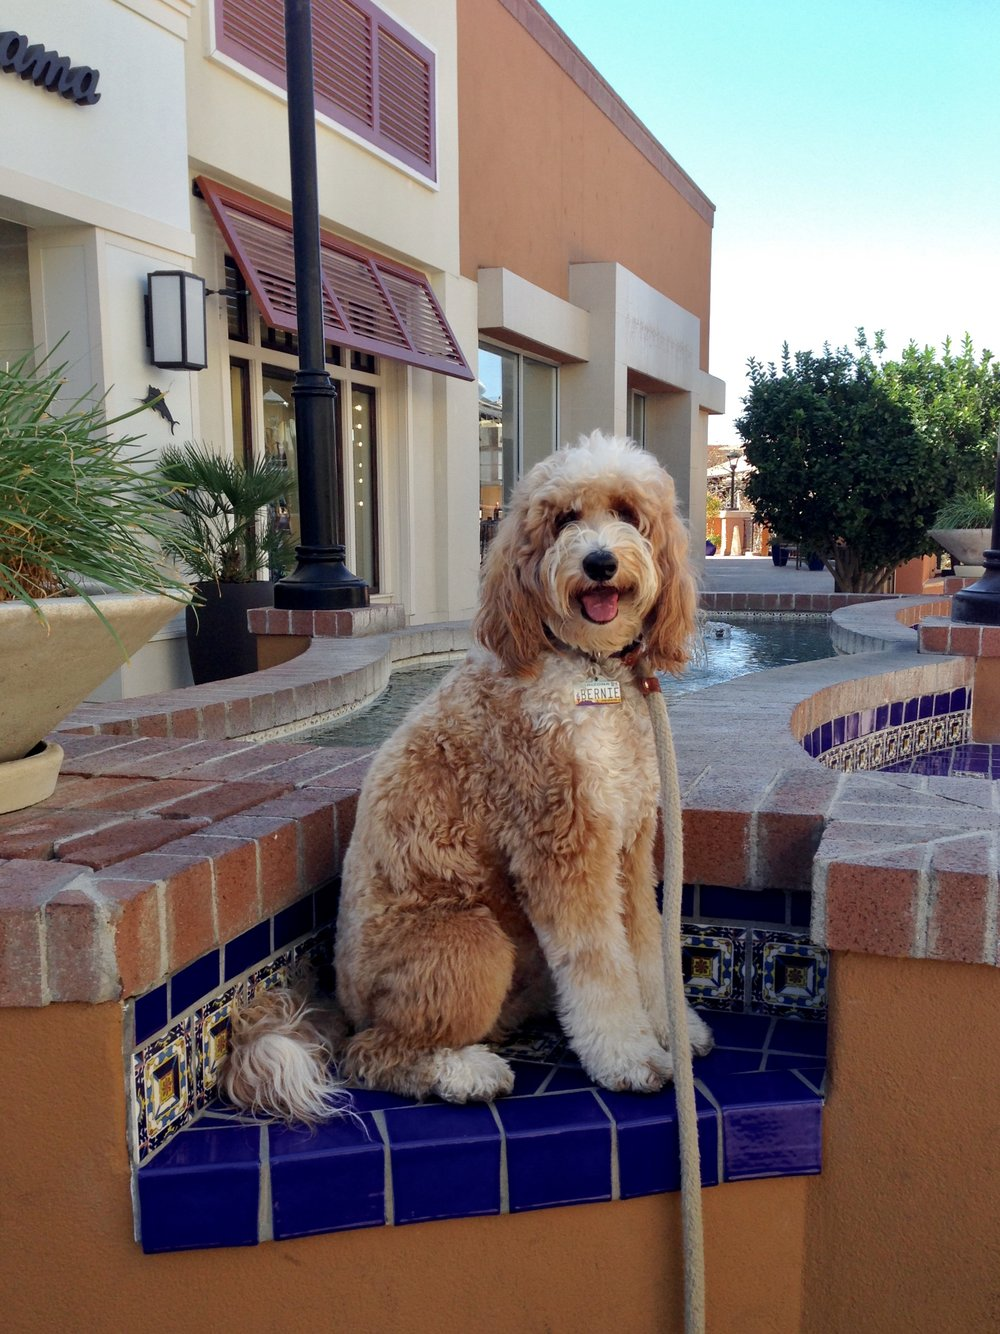 Overtime we visit La Encantada, Bernie McSquare loves to visit this fountain. He jumps up on the tiled ledges and benches just to watch the water spurt. Here he's practicing his sit-stay.